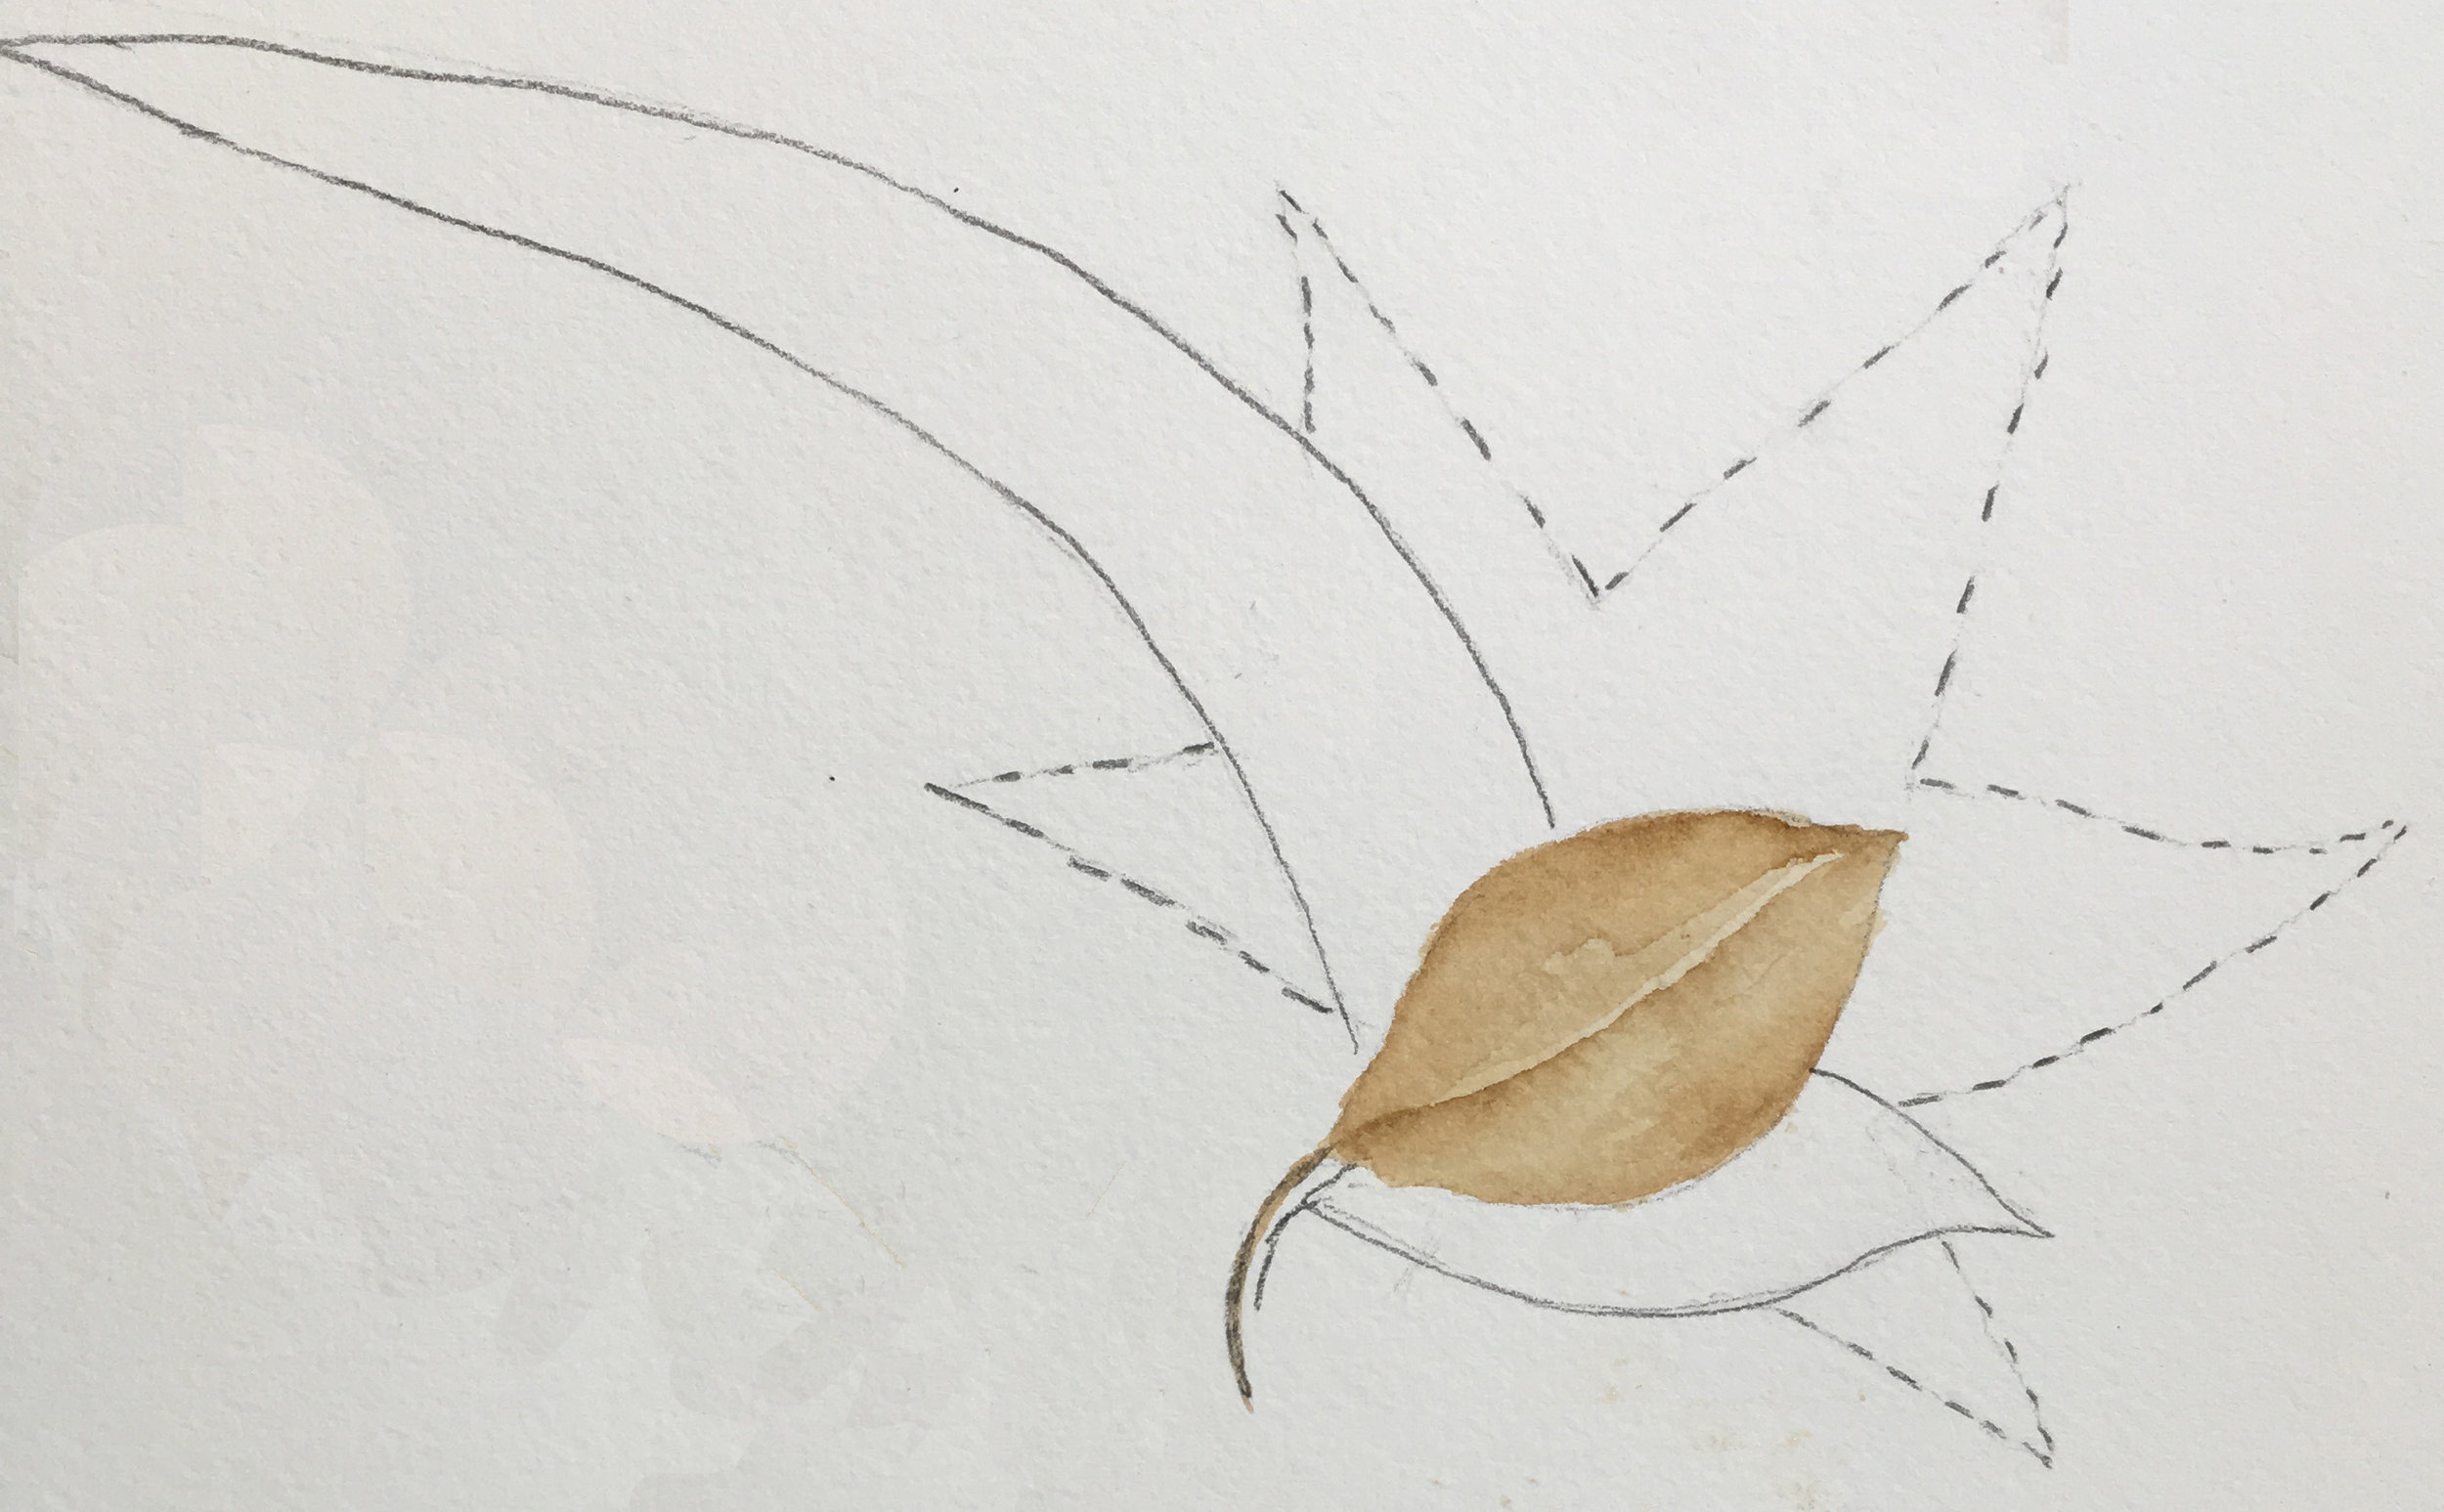 Develop composition by moving between each leaf adding more detail until the final result is achieved.